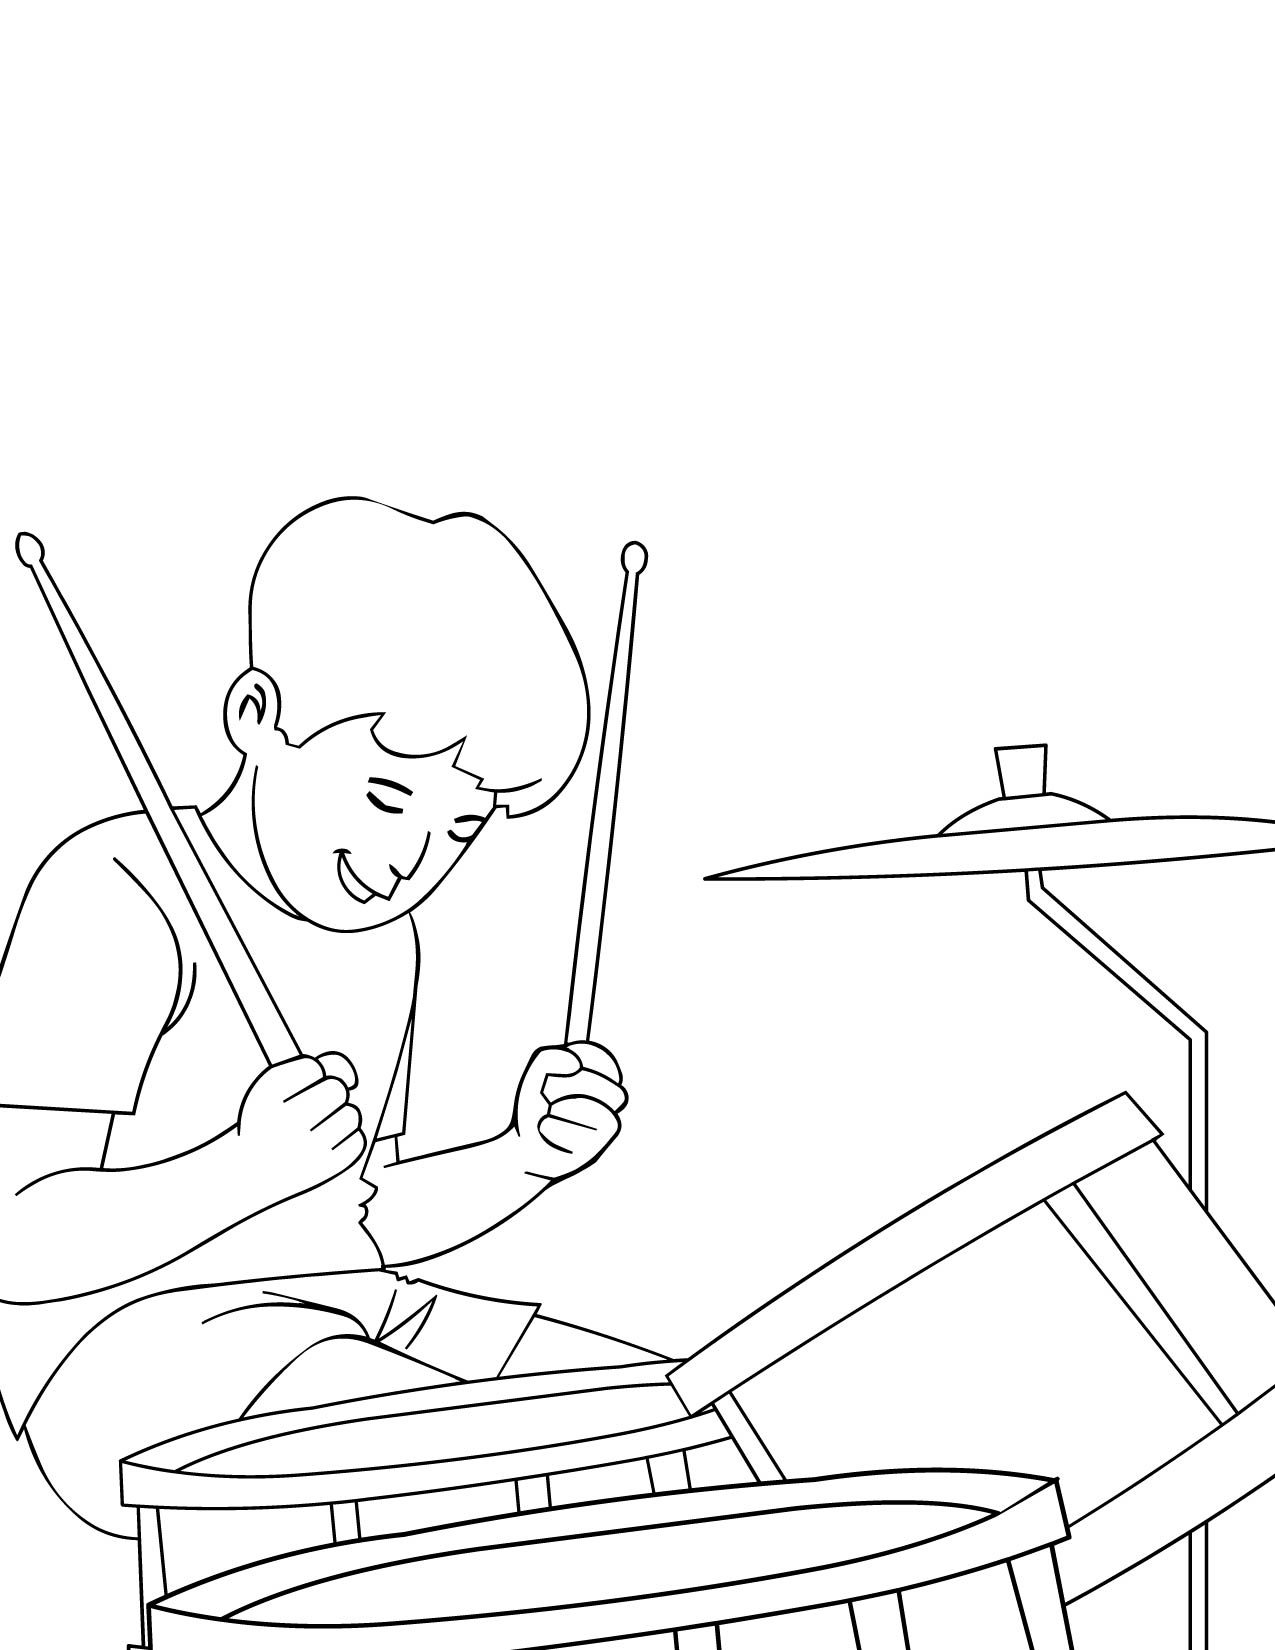 Coloring Pages Drums Coloring Page drums coloring page handipoints drums